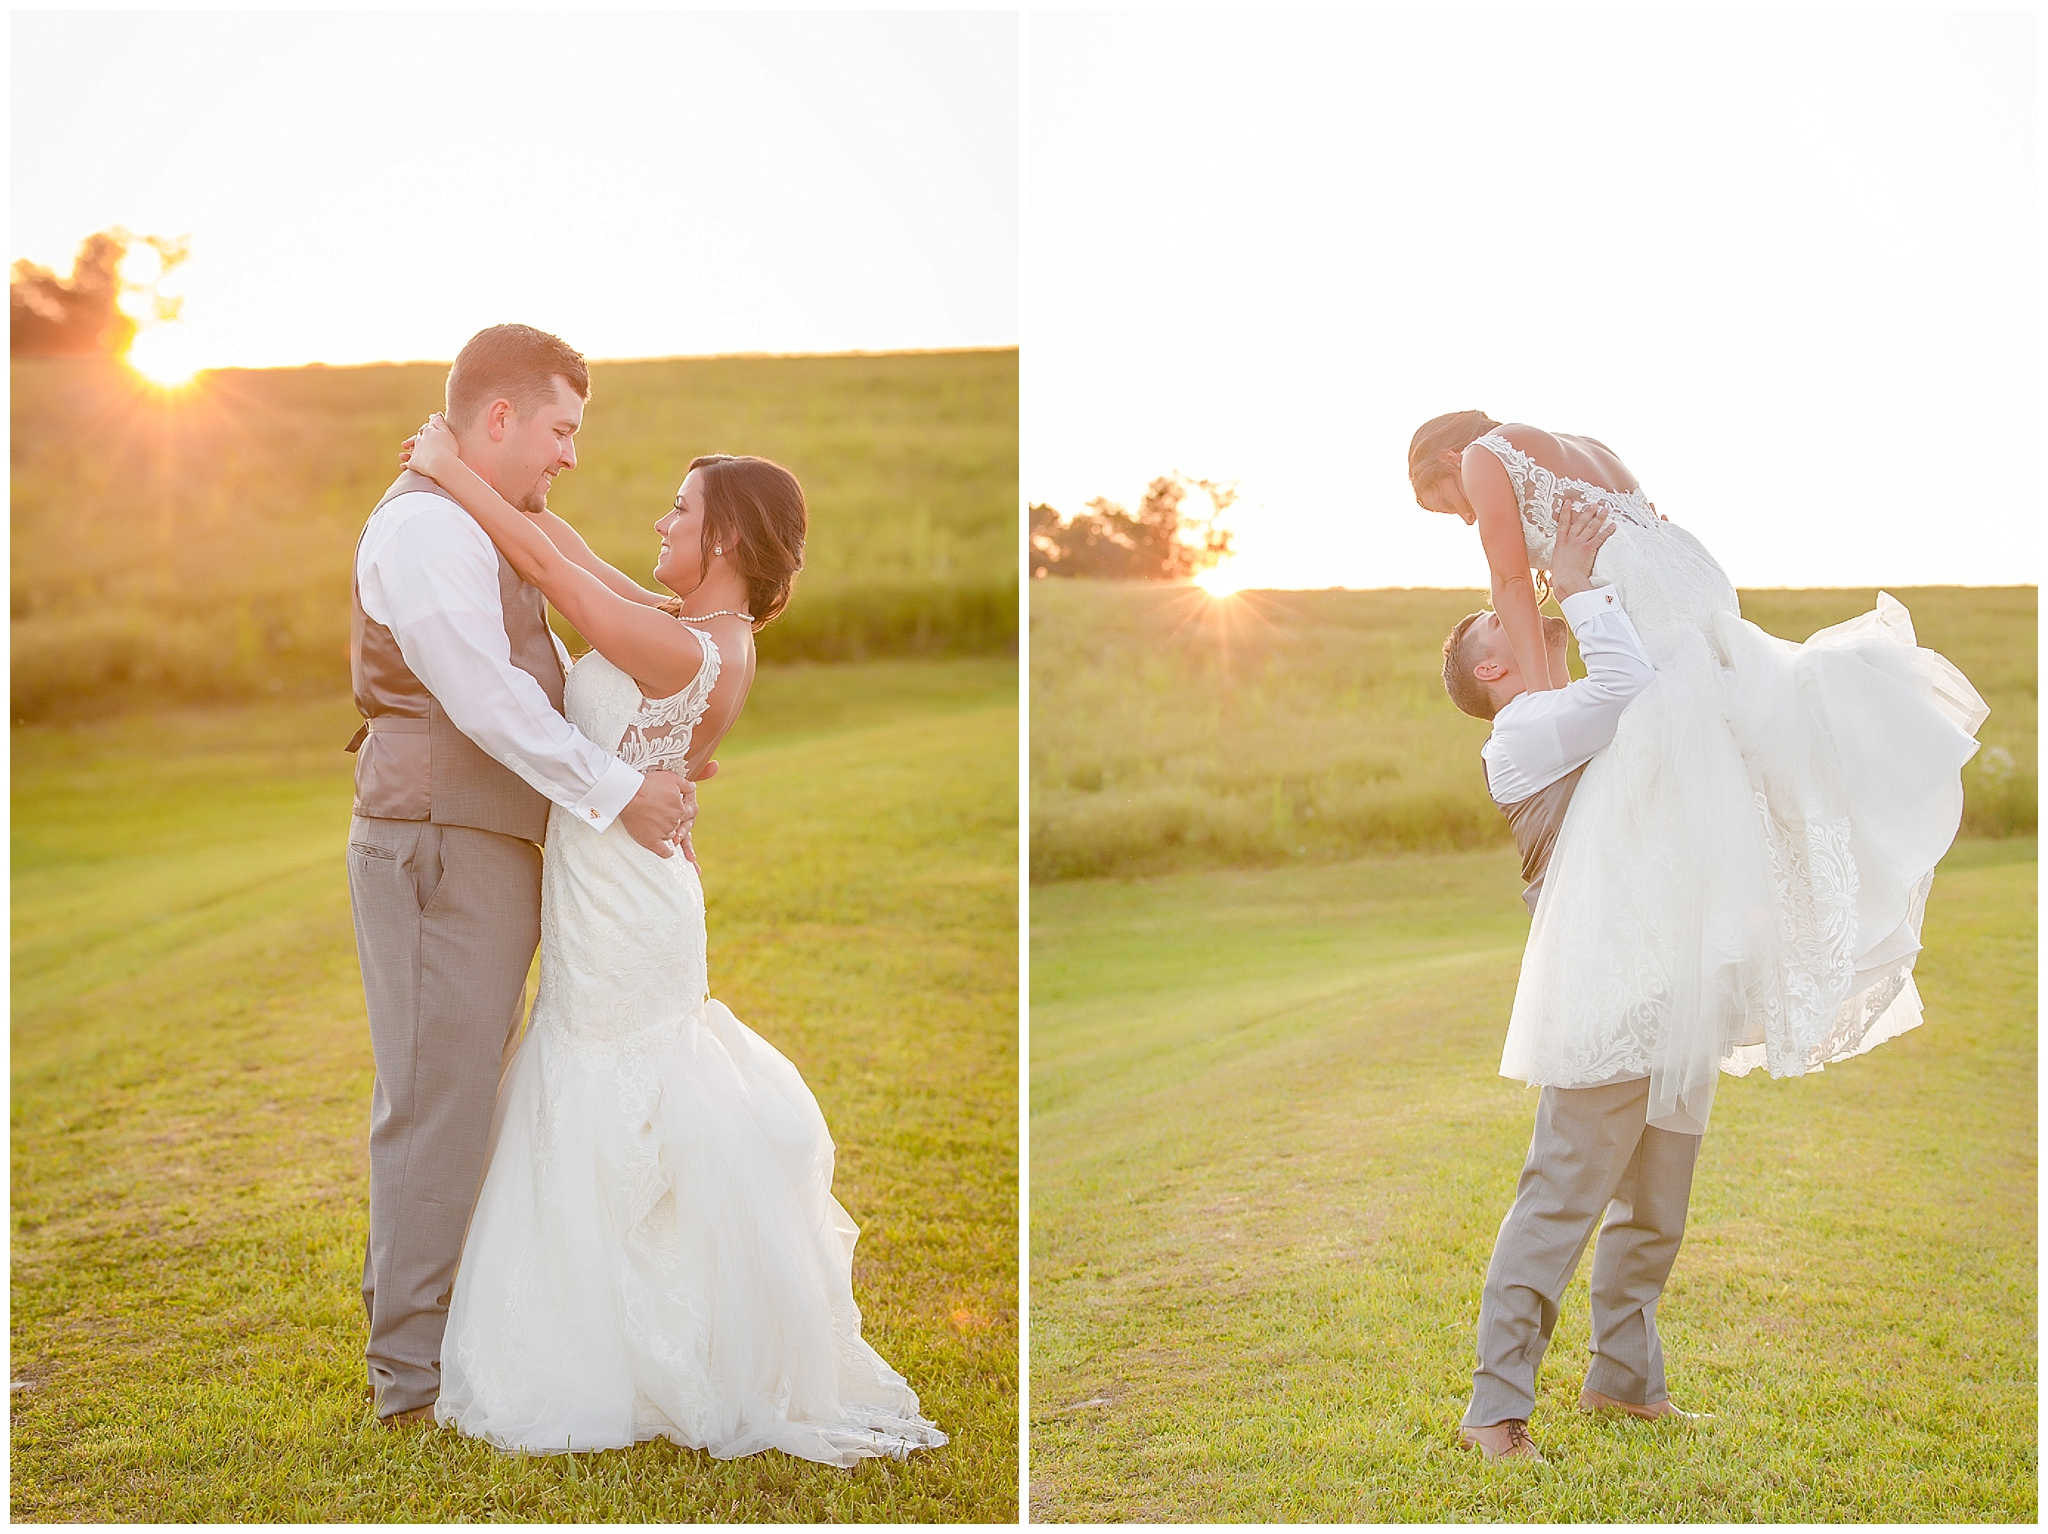 Bride and groom dance at sunset at White Barn